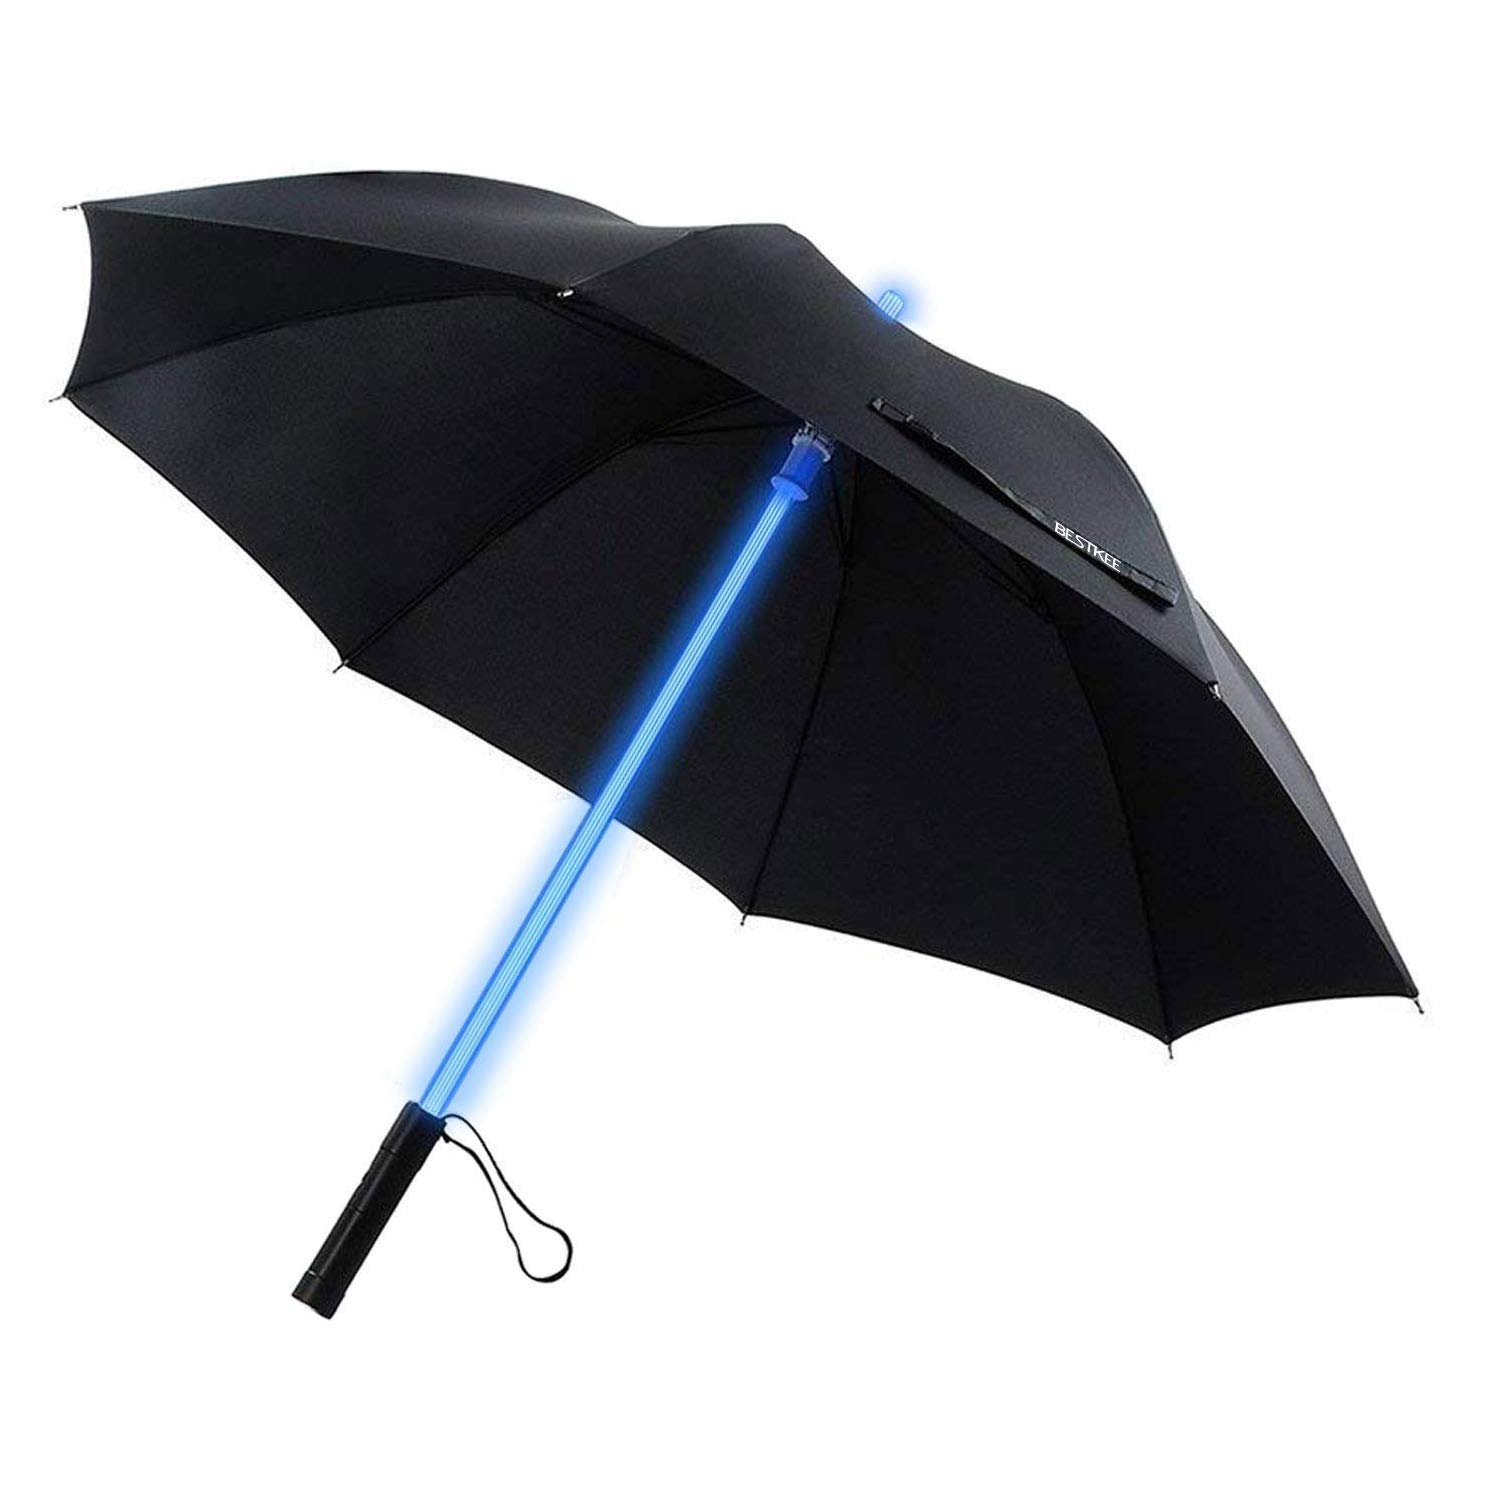 LED Umbrella - Lightsaber Laser Sword Light up Umbrella with 7 Color Changing On the Shaft/Built in Torch at Bottom by Bestkee (Black) by BESTKEE